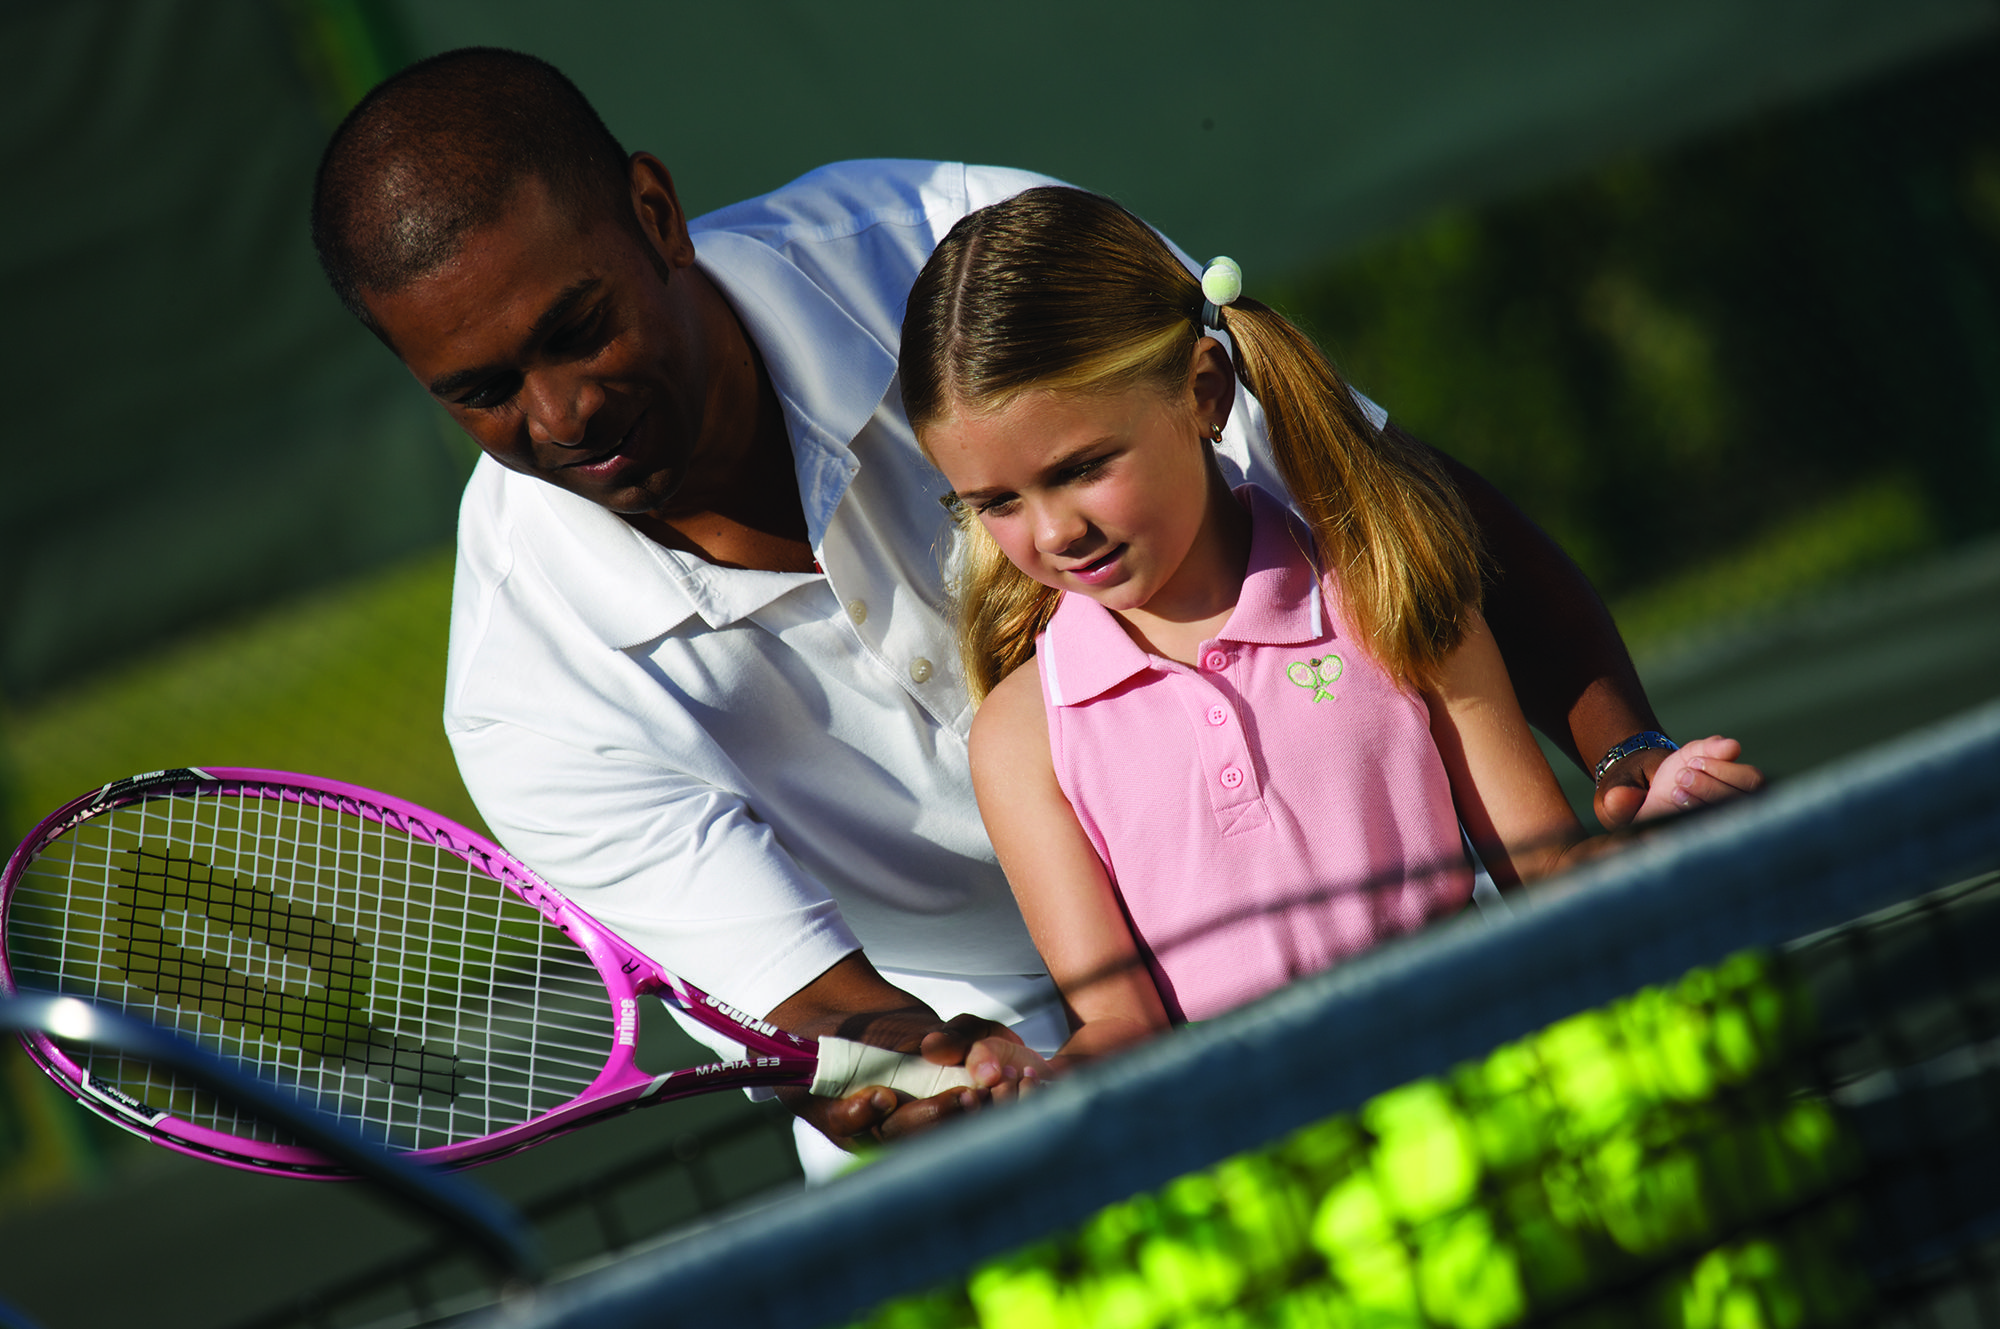 Junior tennis academy summer camp covers the basics to